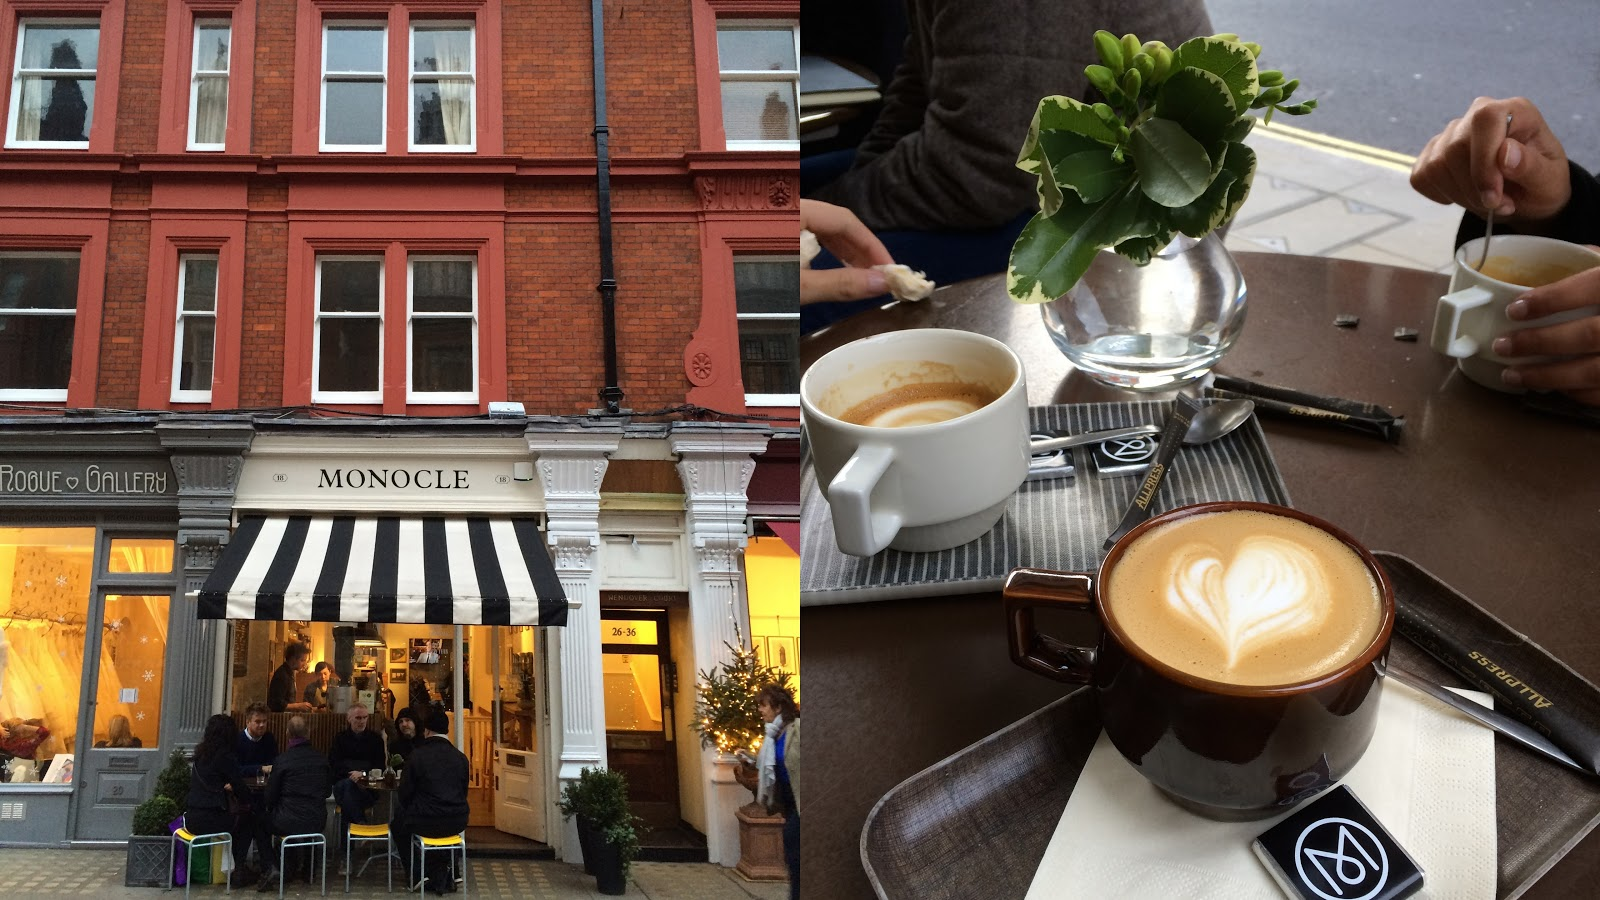 Monocle Cafe London Chiltern street